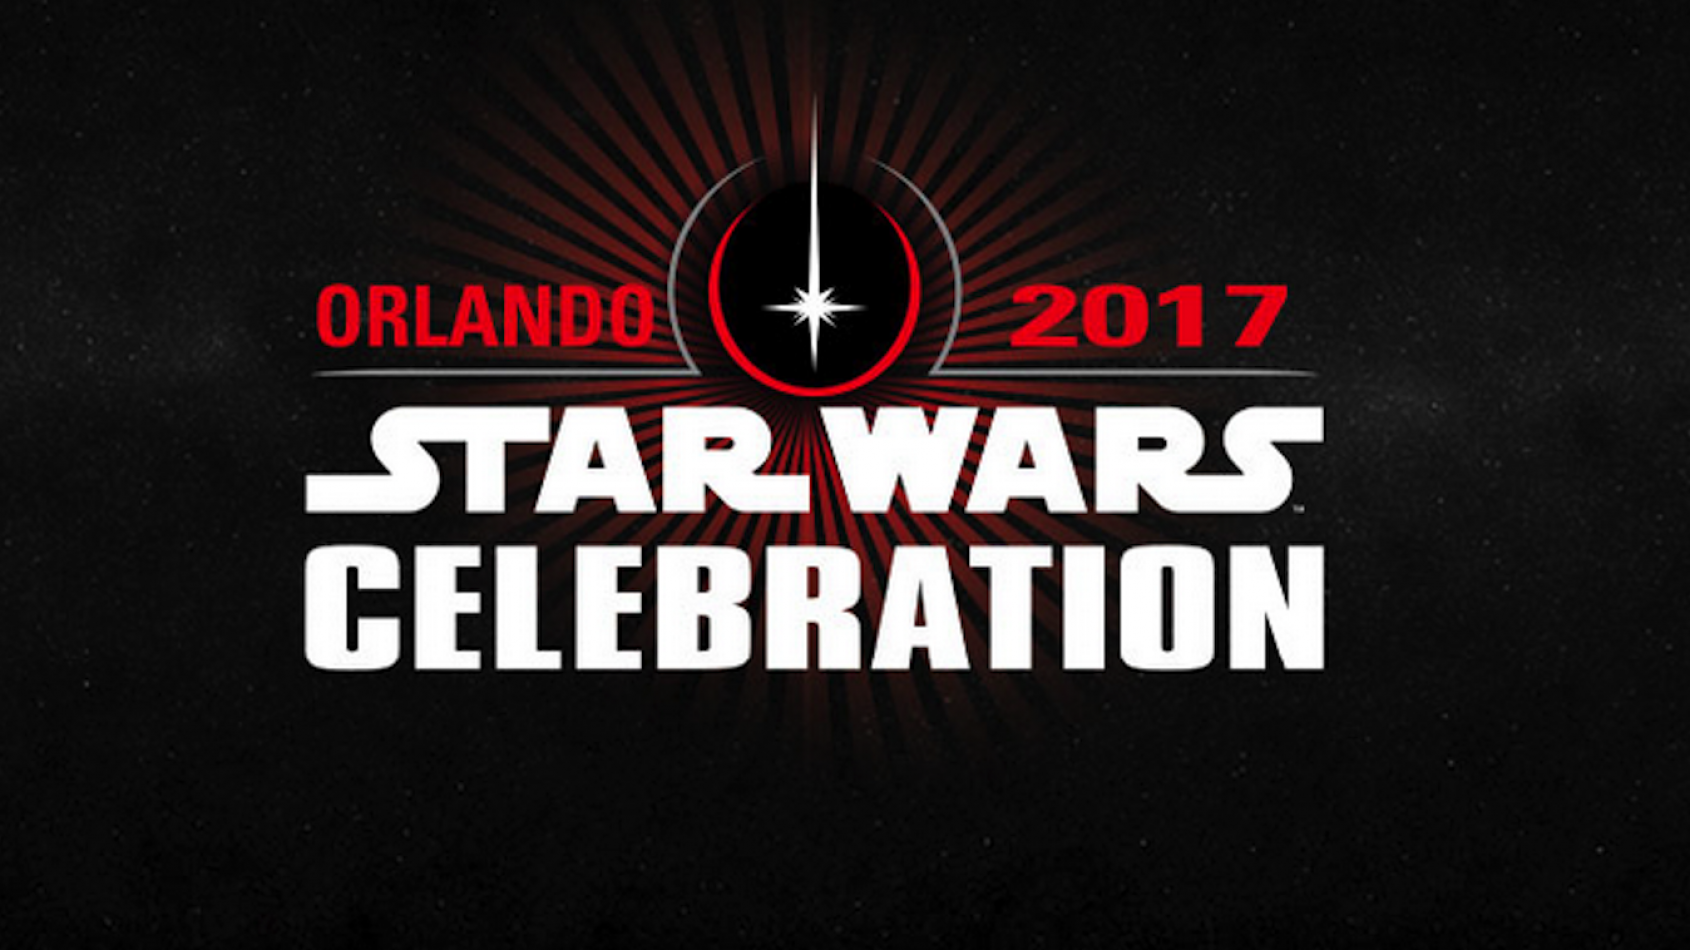 Star Wars Celebration 2017 à Orlando !